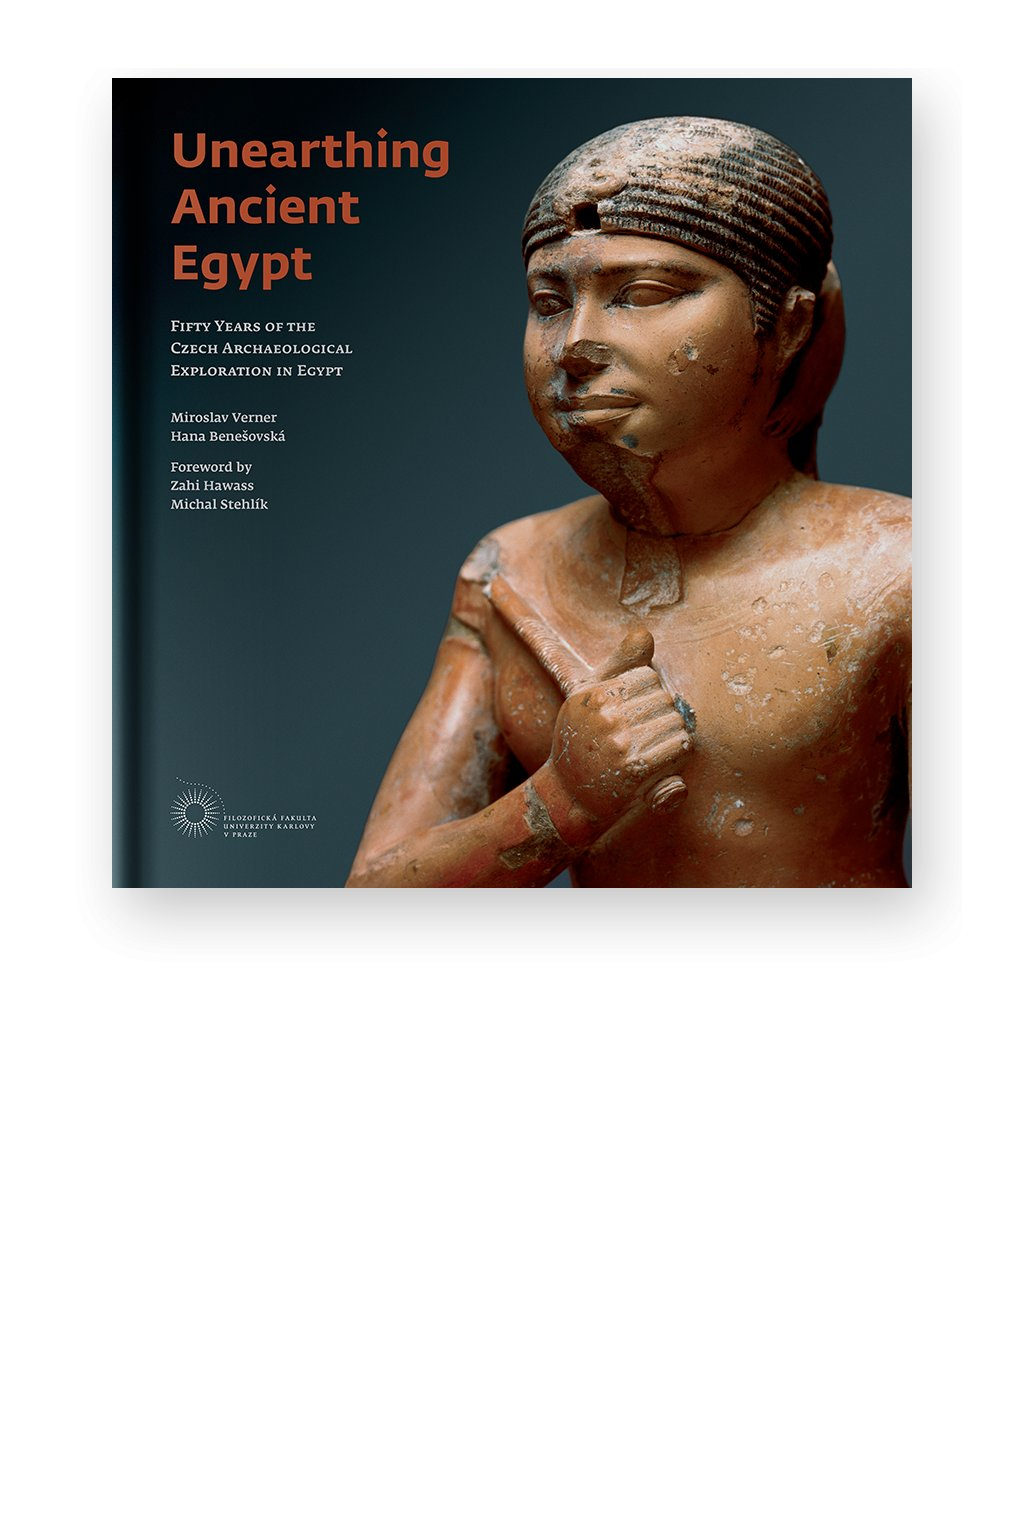 735 unearthing ancient egypt